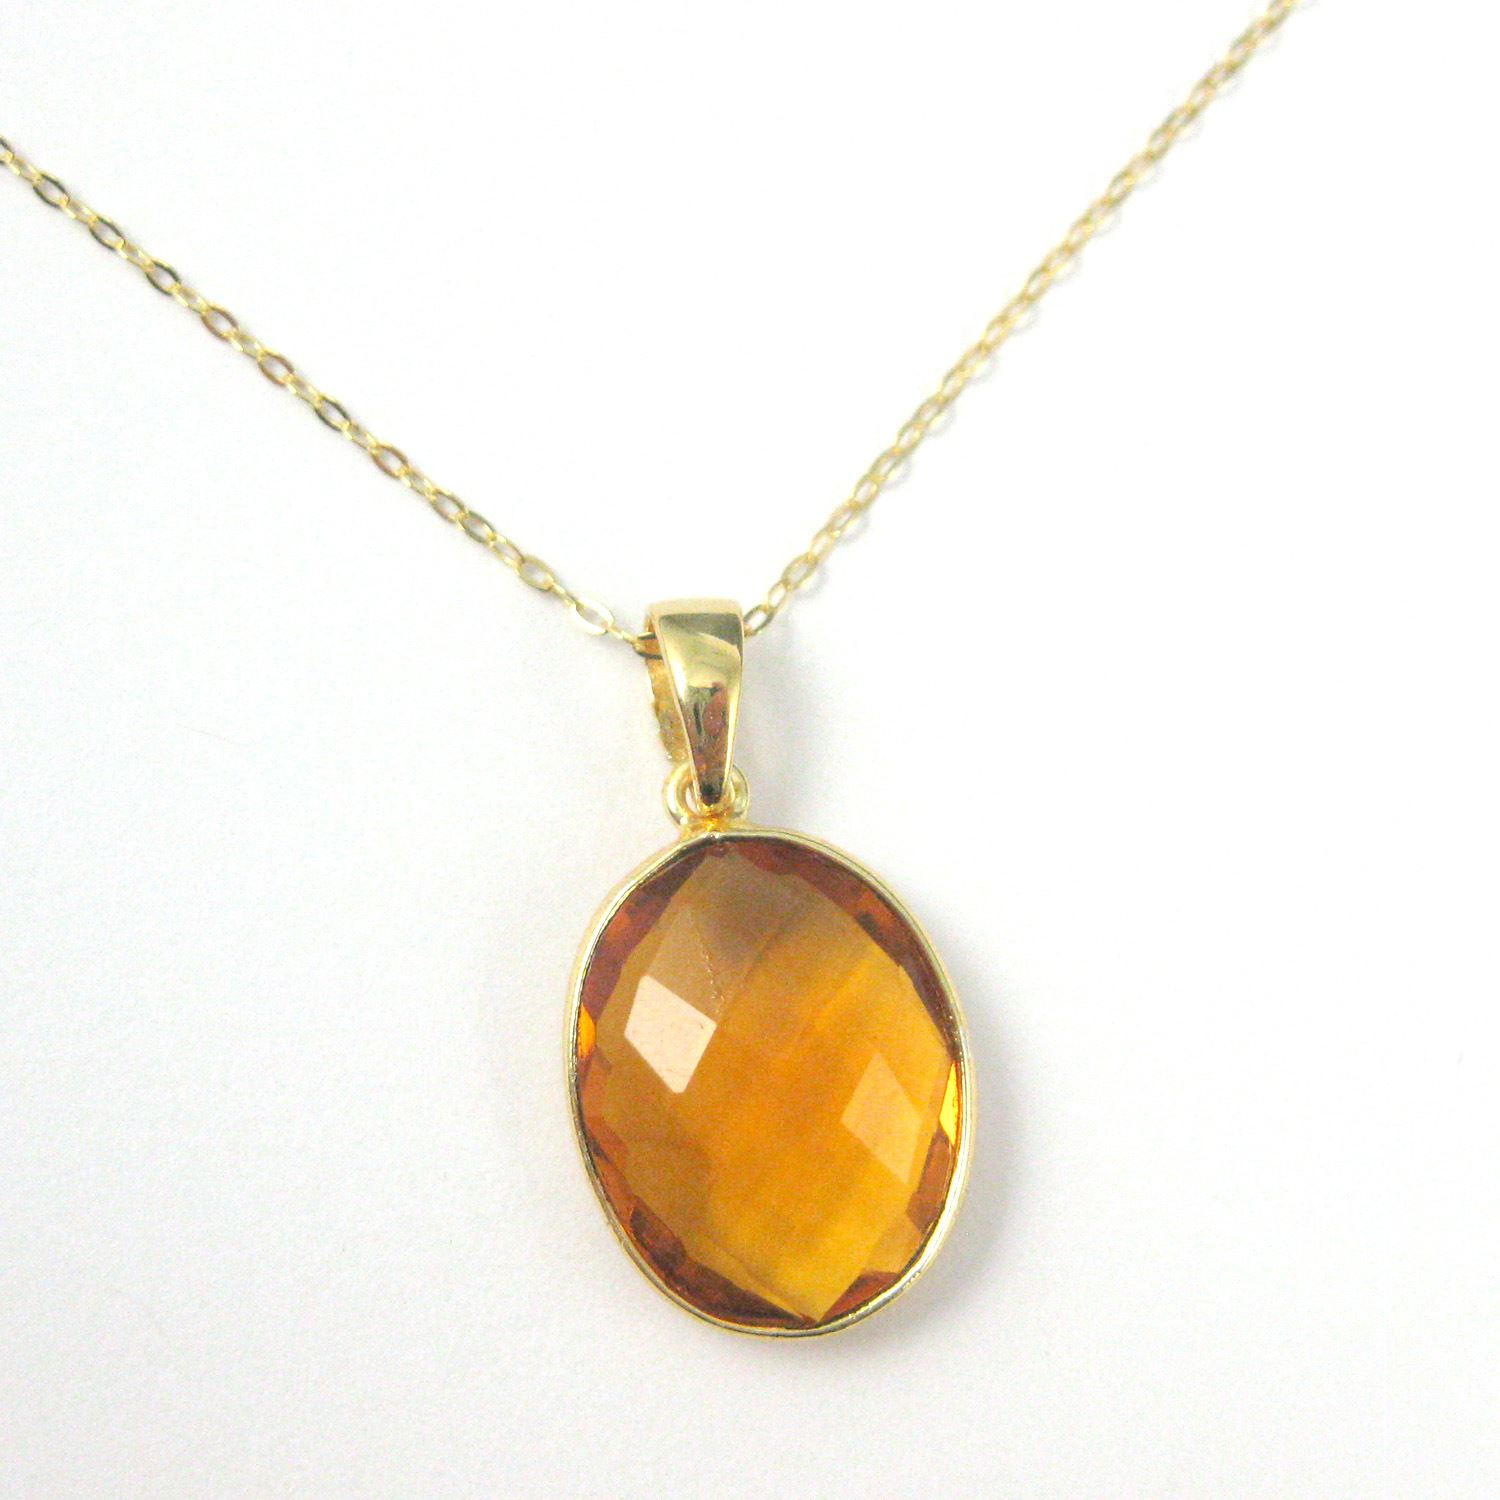 Bezel Gemstone Pendant with Bail - Gold plated Sterling Silver Oval Gem Pendant - Ready for Necklace - 28mm - Citrine Quartz